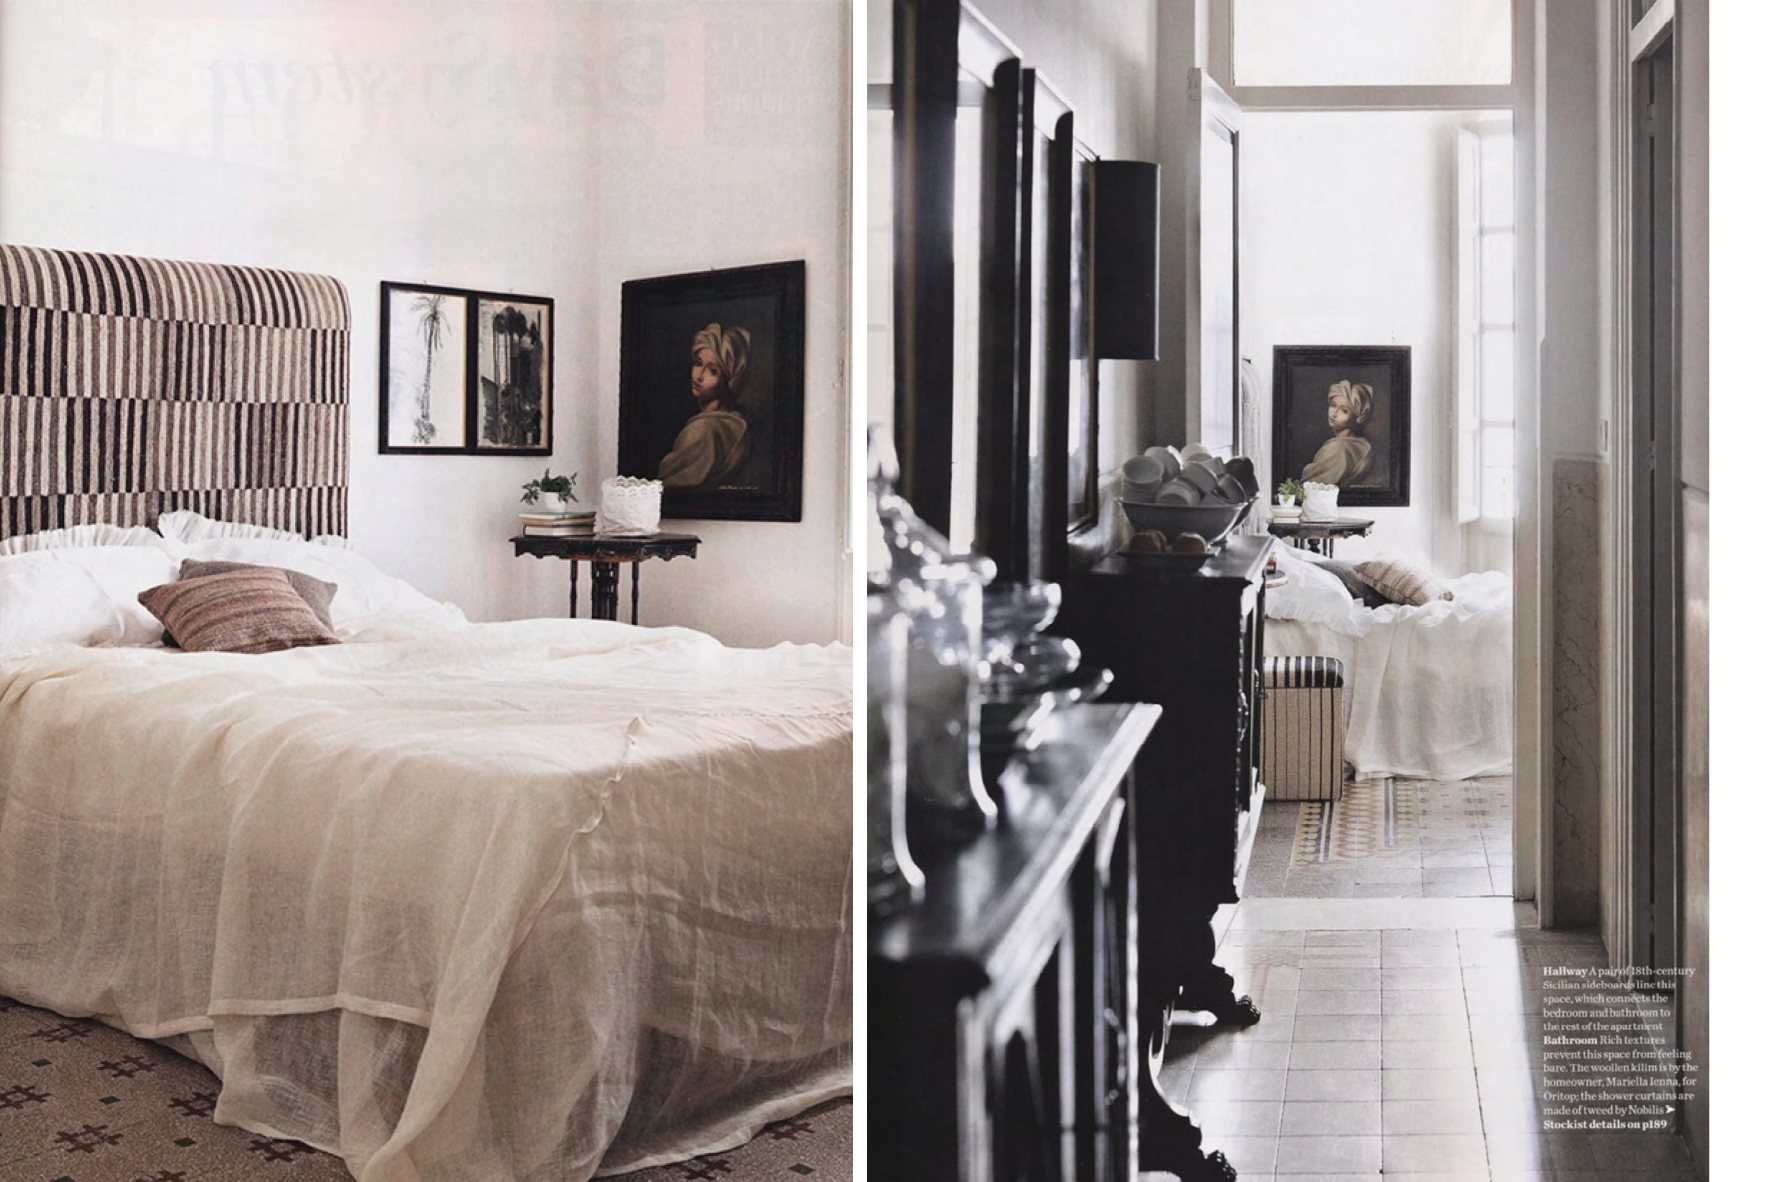 MID_INTERIORS_palermoapt05.png